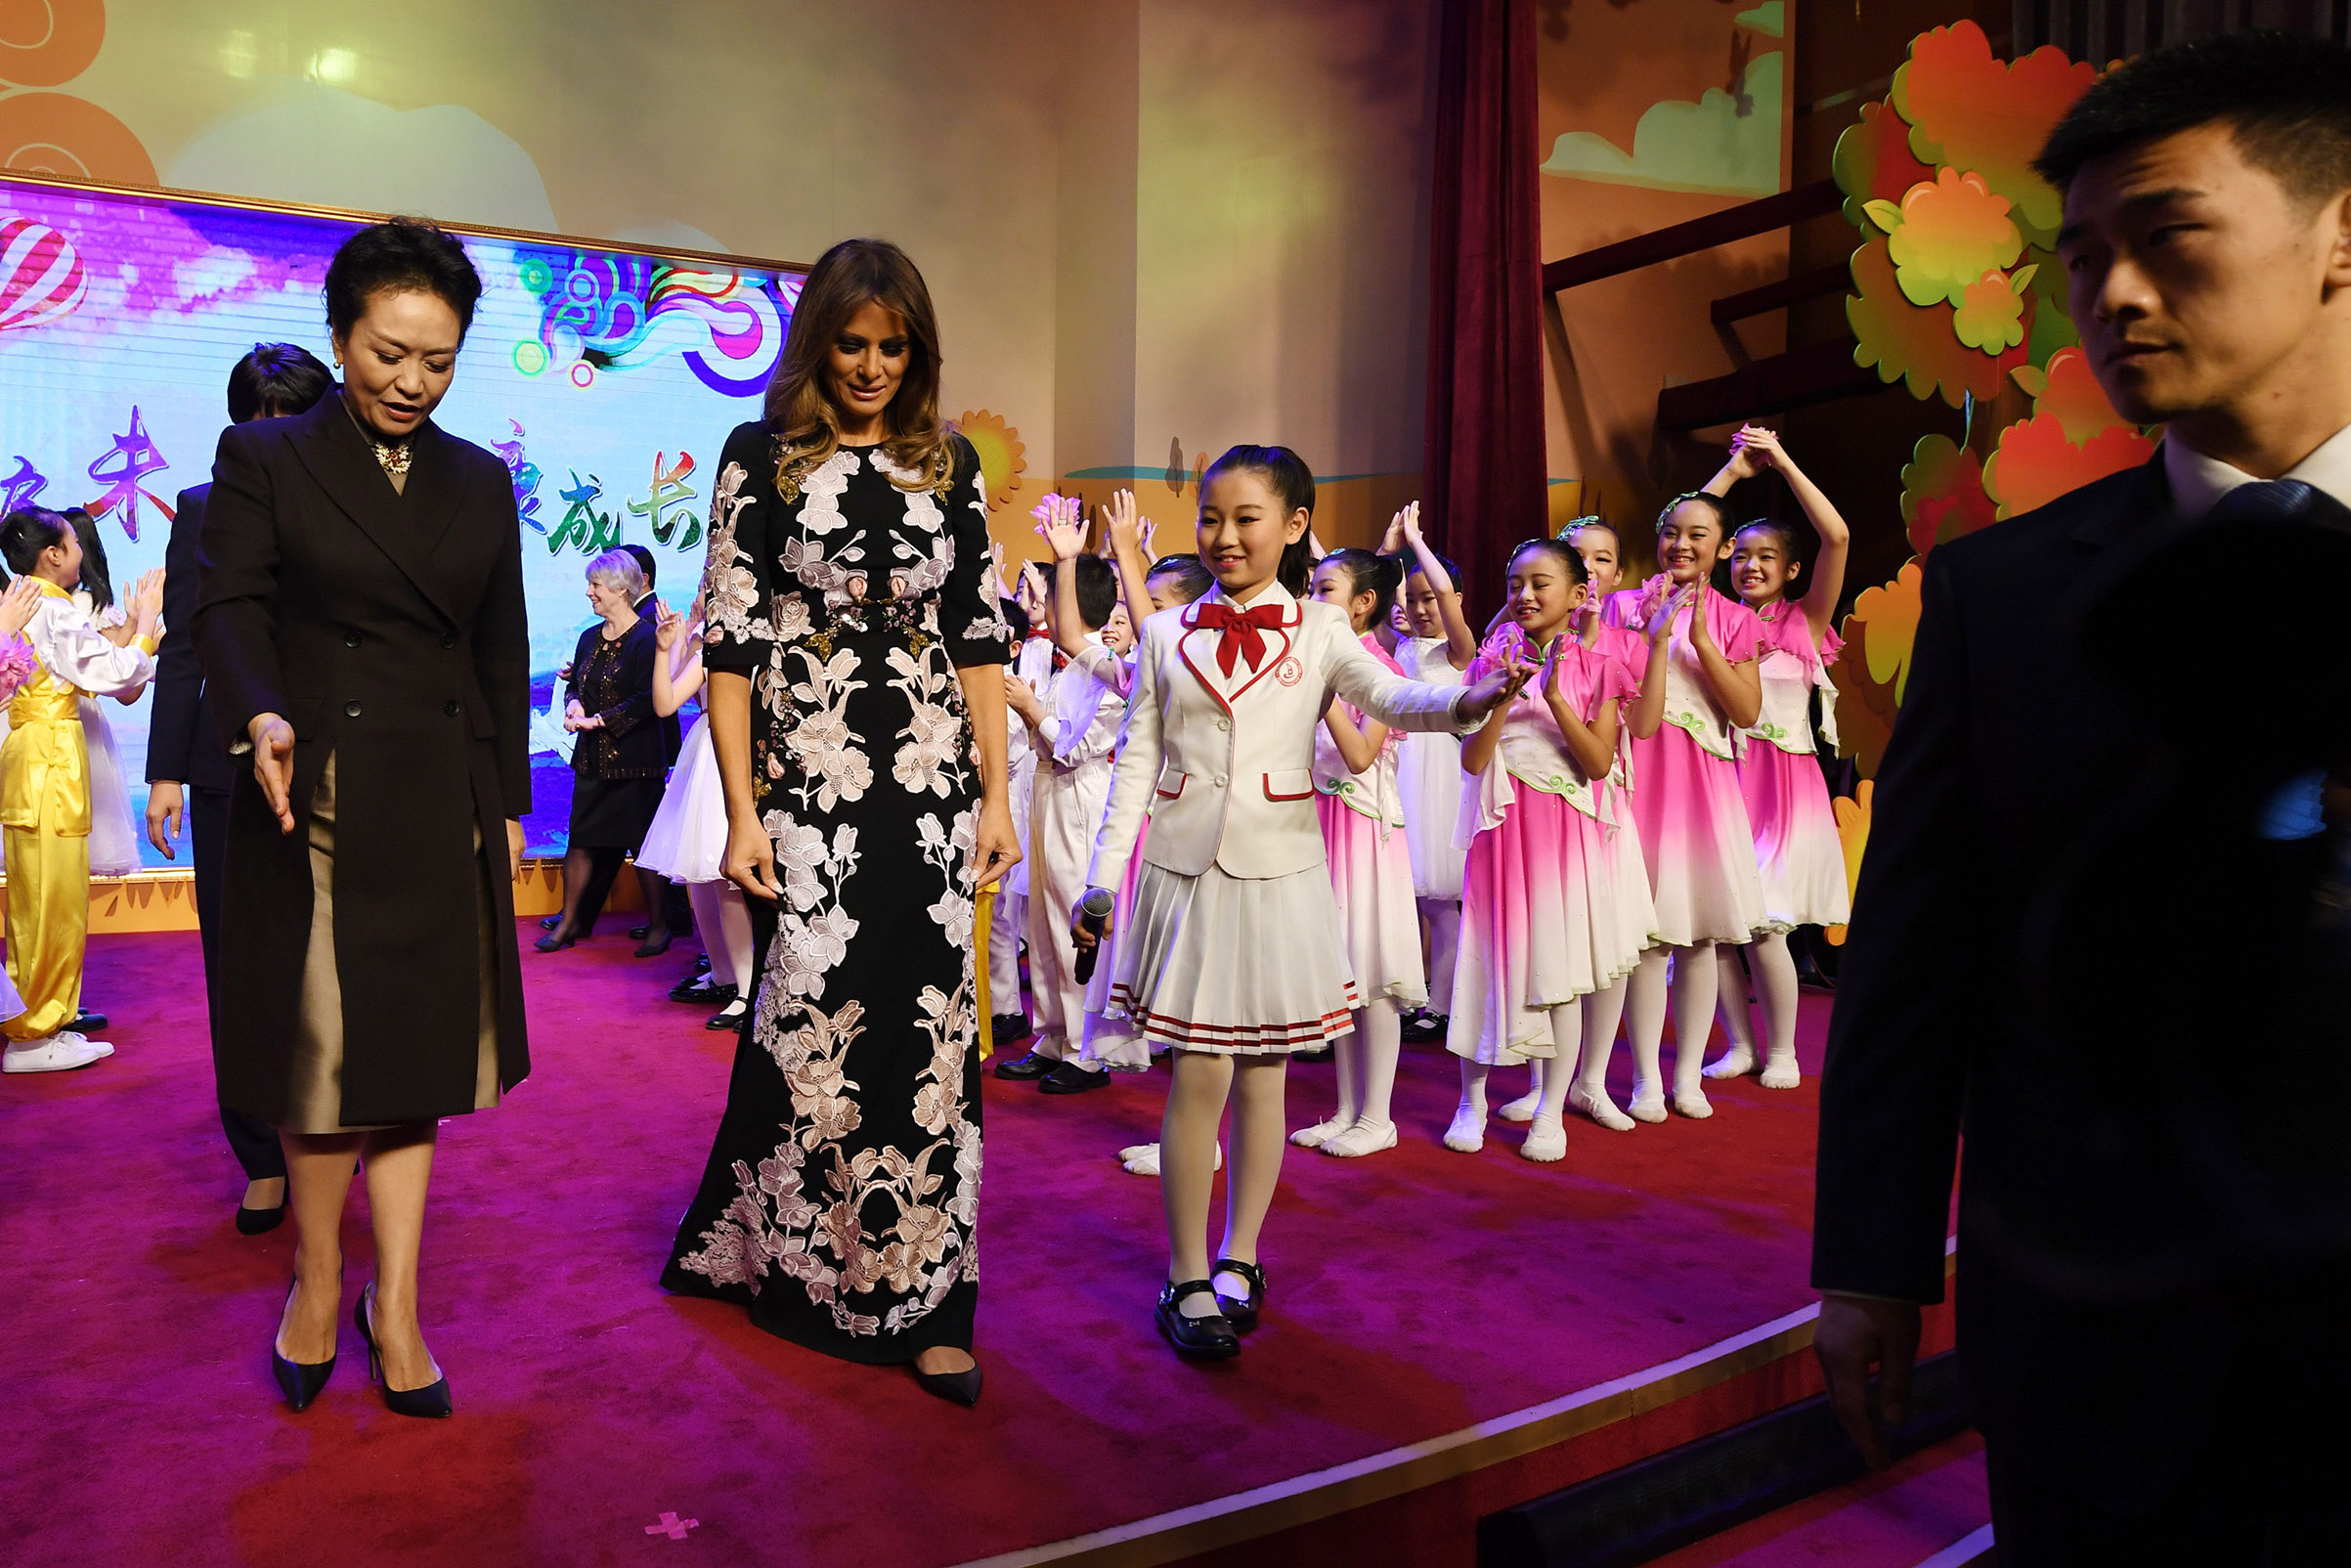 First Lady Melania Trump, wearing a custom Dolce & Gabbana gown, and China's First Lady Peng Liyuan are escorted by a student after a cultural performance during a visit to Banchang Primary School in Beijing on Nov. 9, 2017.